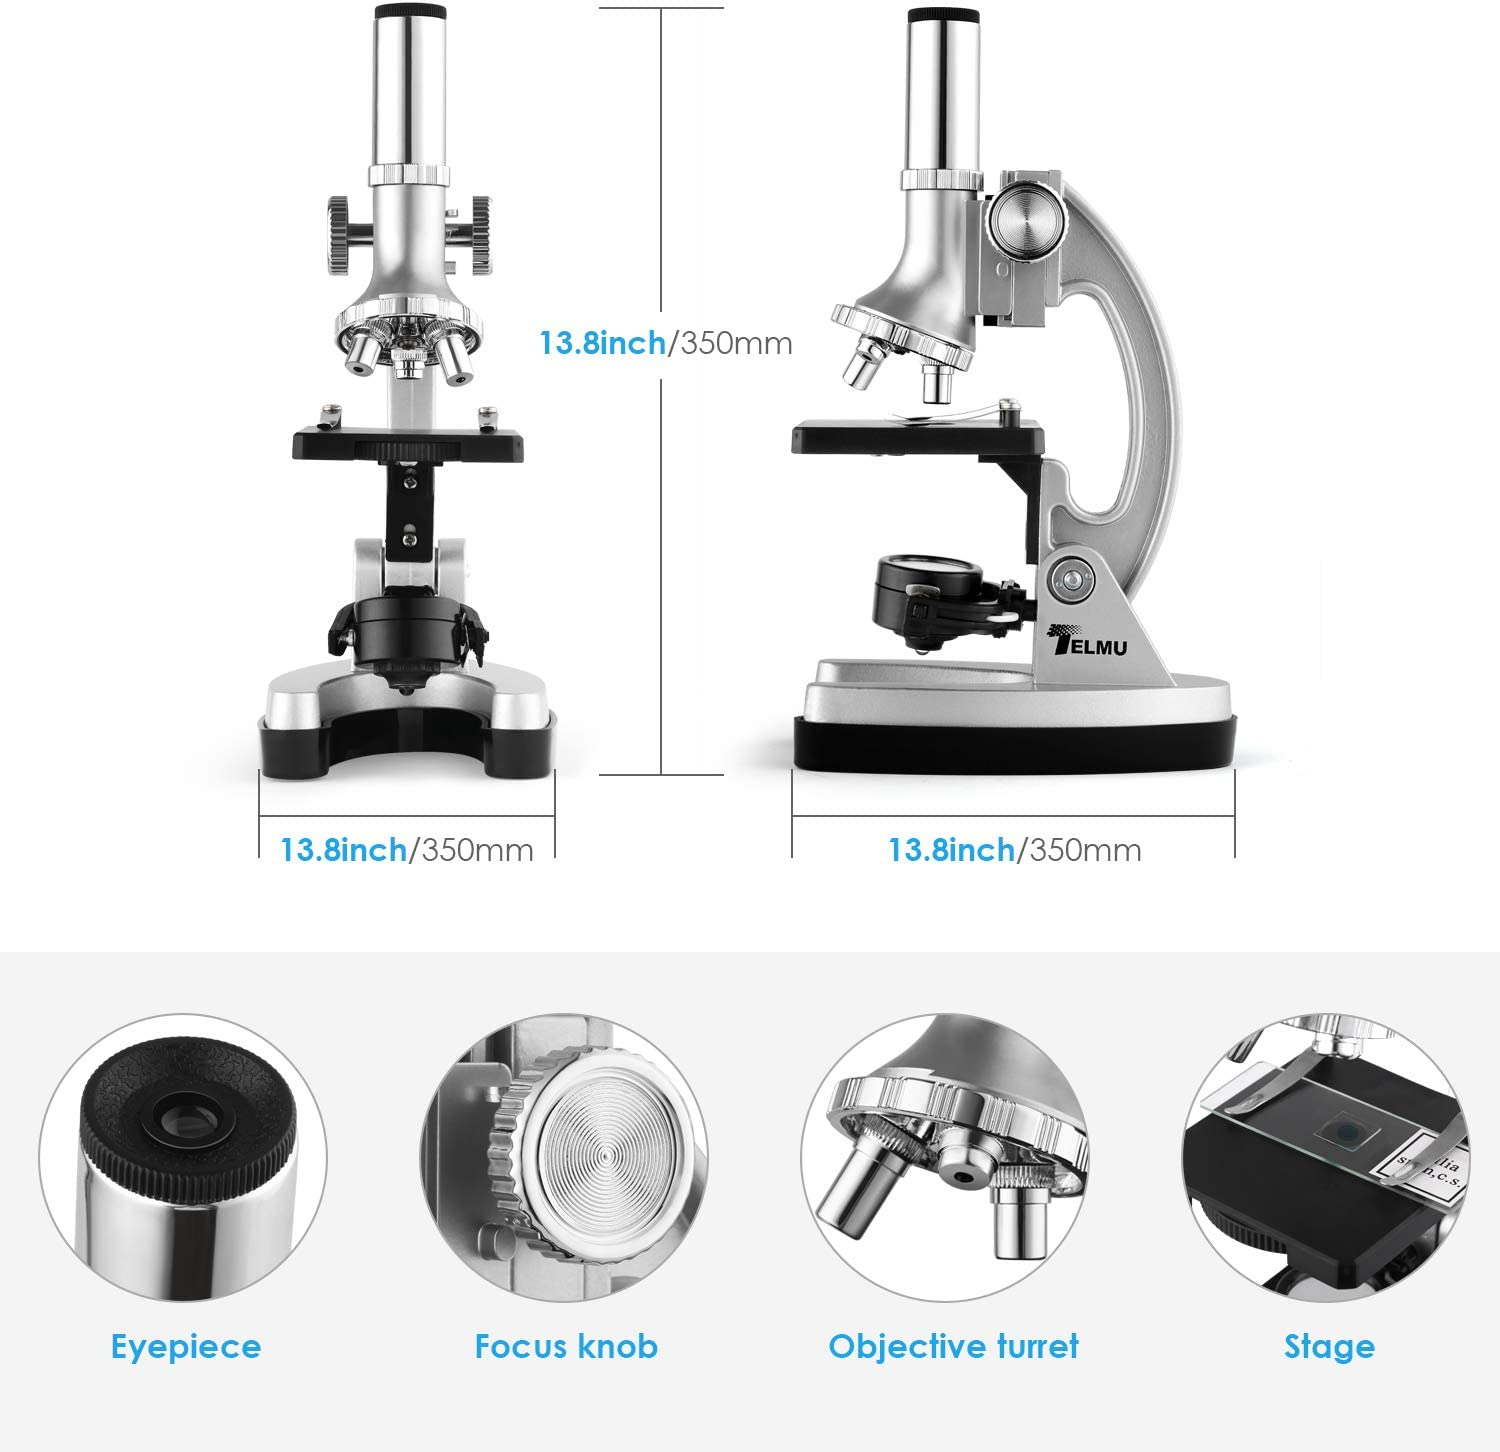 300X-600X-1200X Magnification Compound Binocular Microscopes with Metal Arm and Base for Beginners Accessory Set TELMU Microscope Includes 70pcs